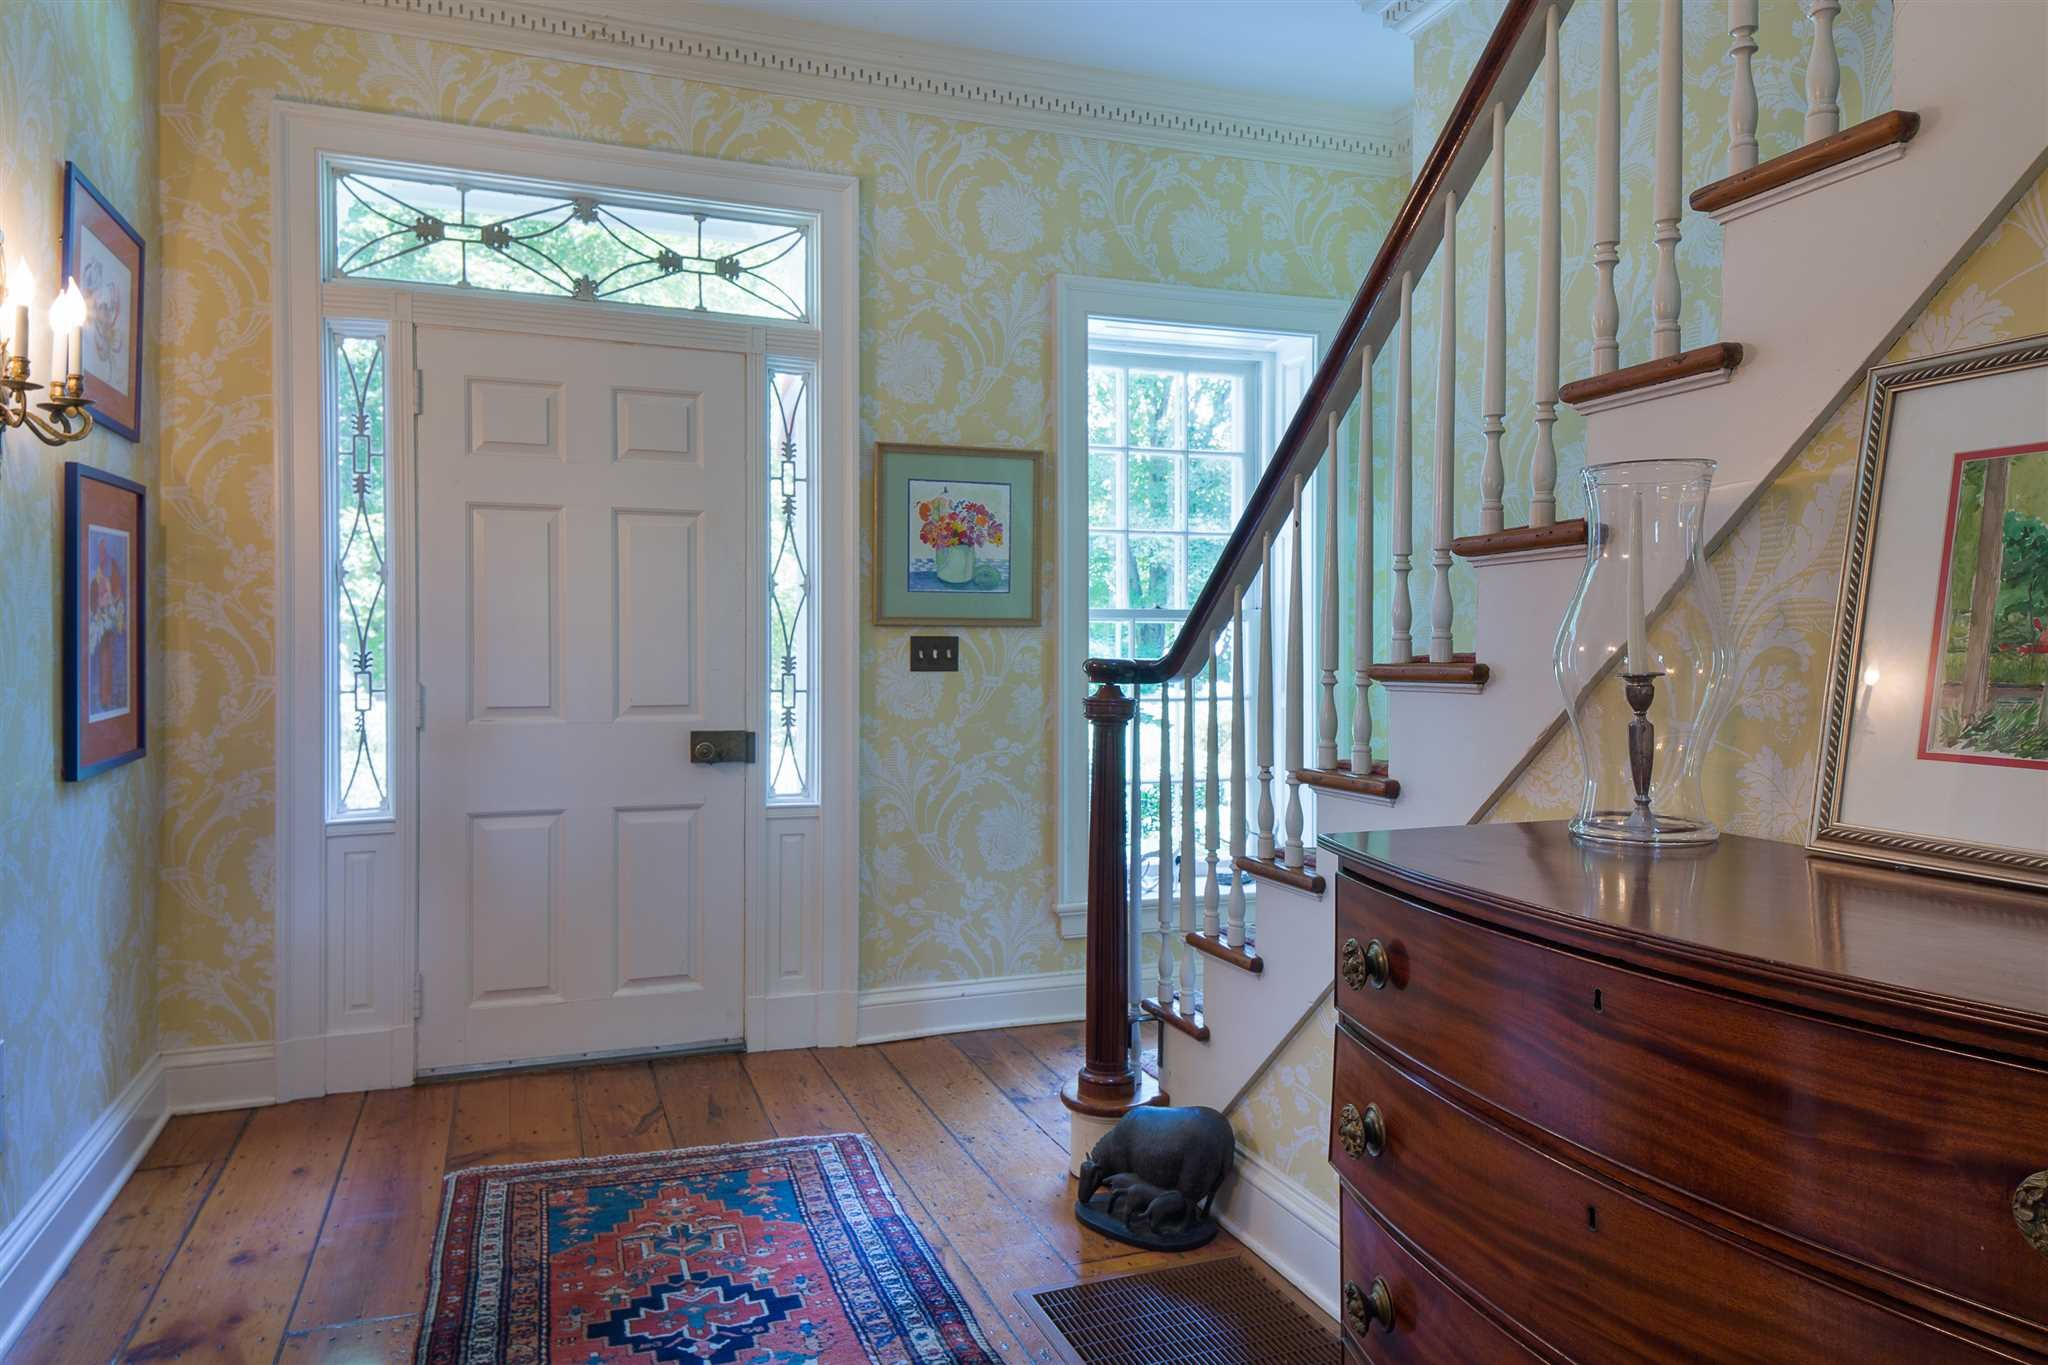 Additional photo for property listing at 99 SHAKER MUSEUM Road 99 SHAKER MUSEUM Road Chatham, New York 12136 United States